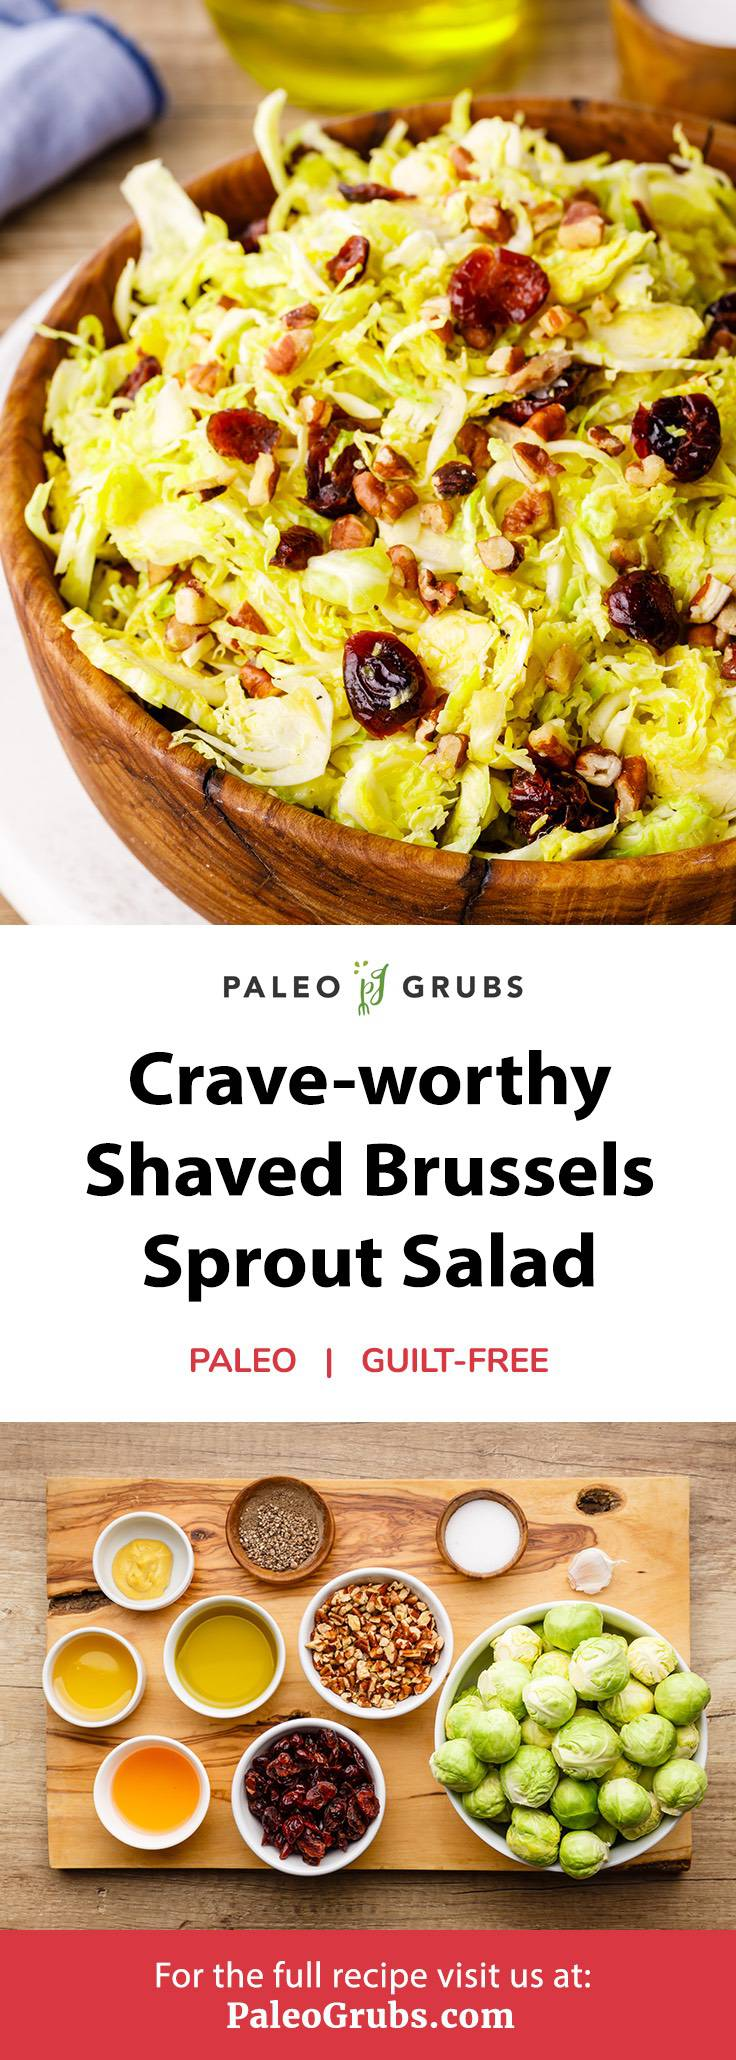 Crave-worthy Shaved Brussels Sprout Salad